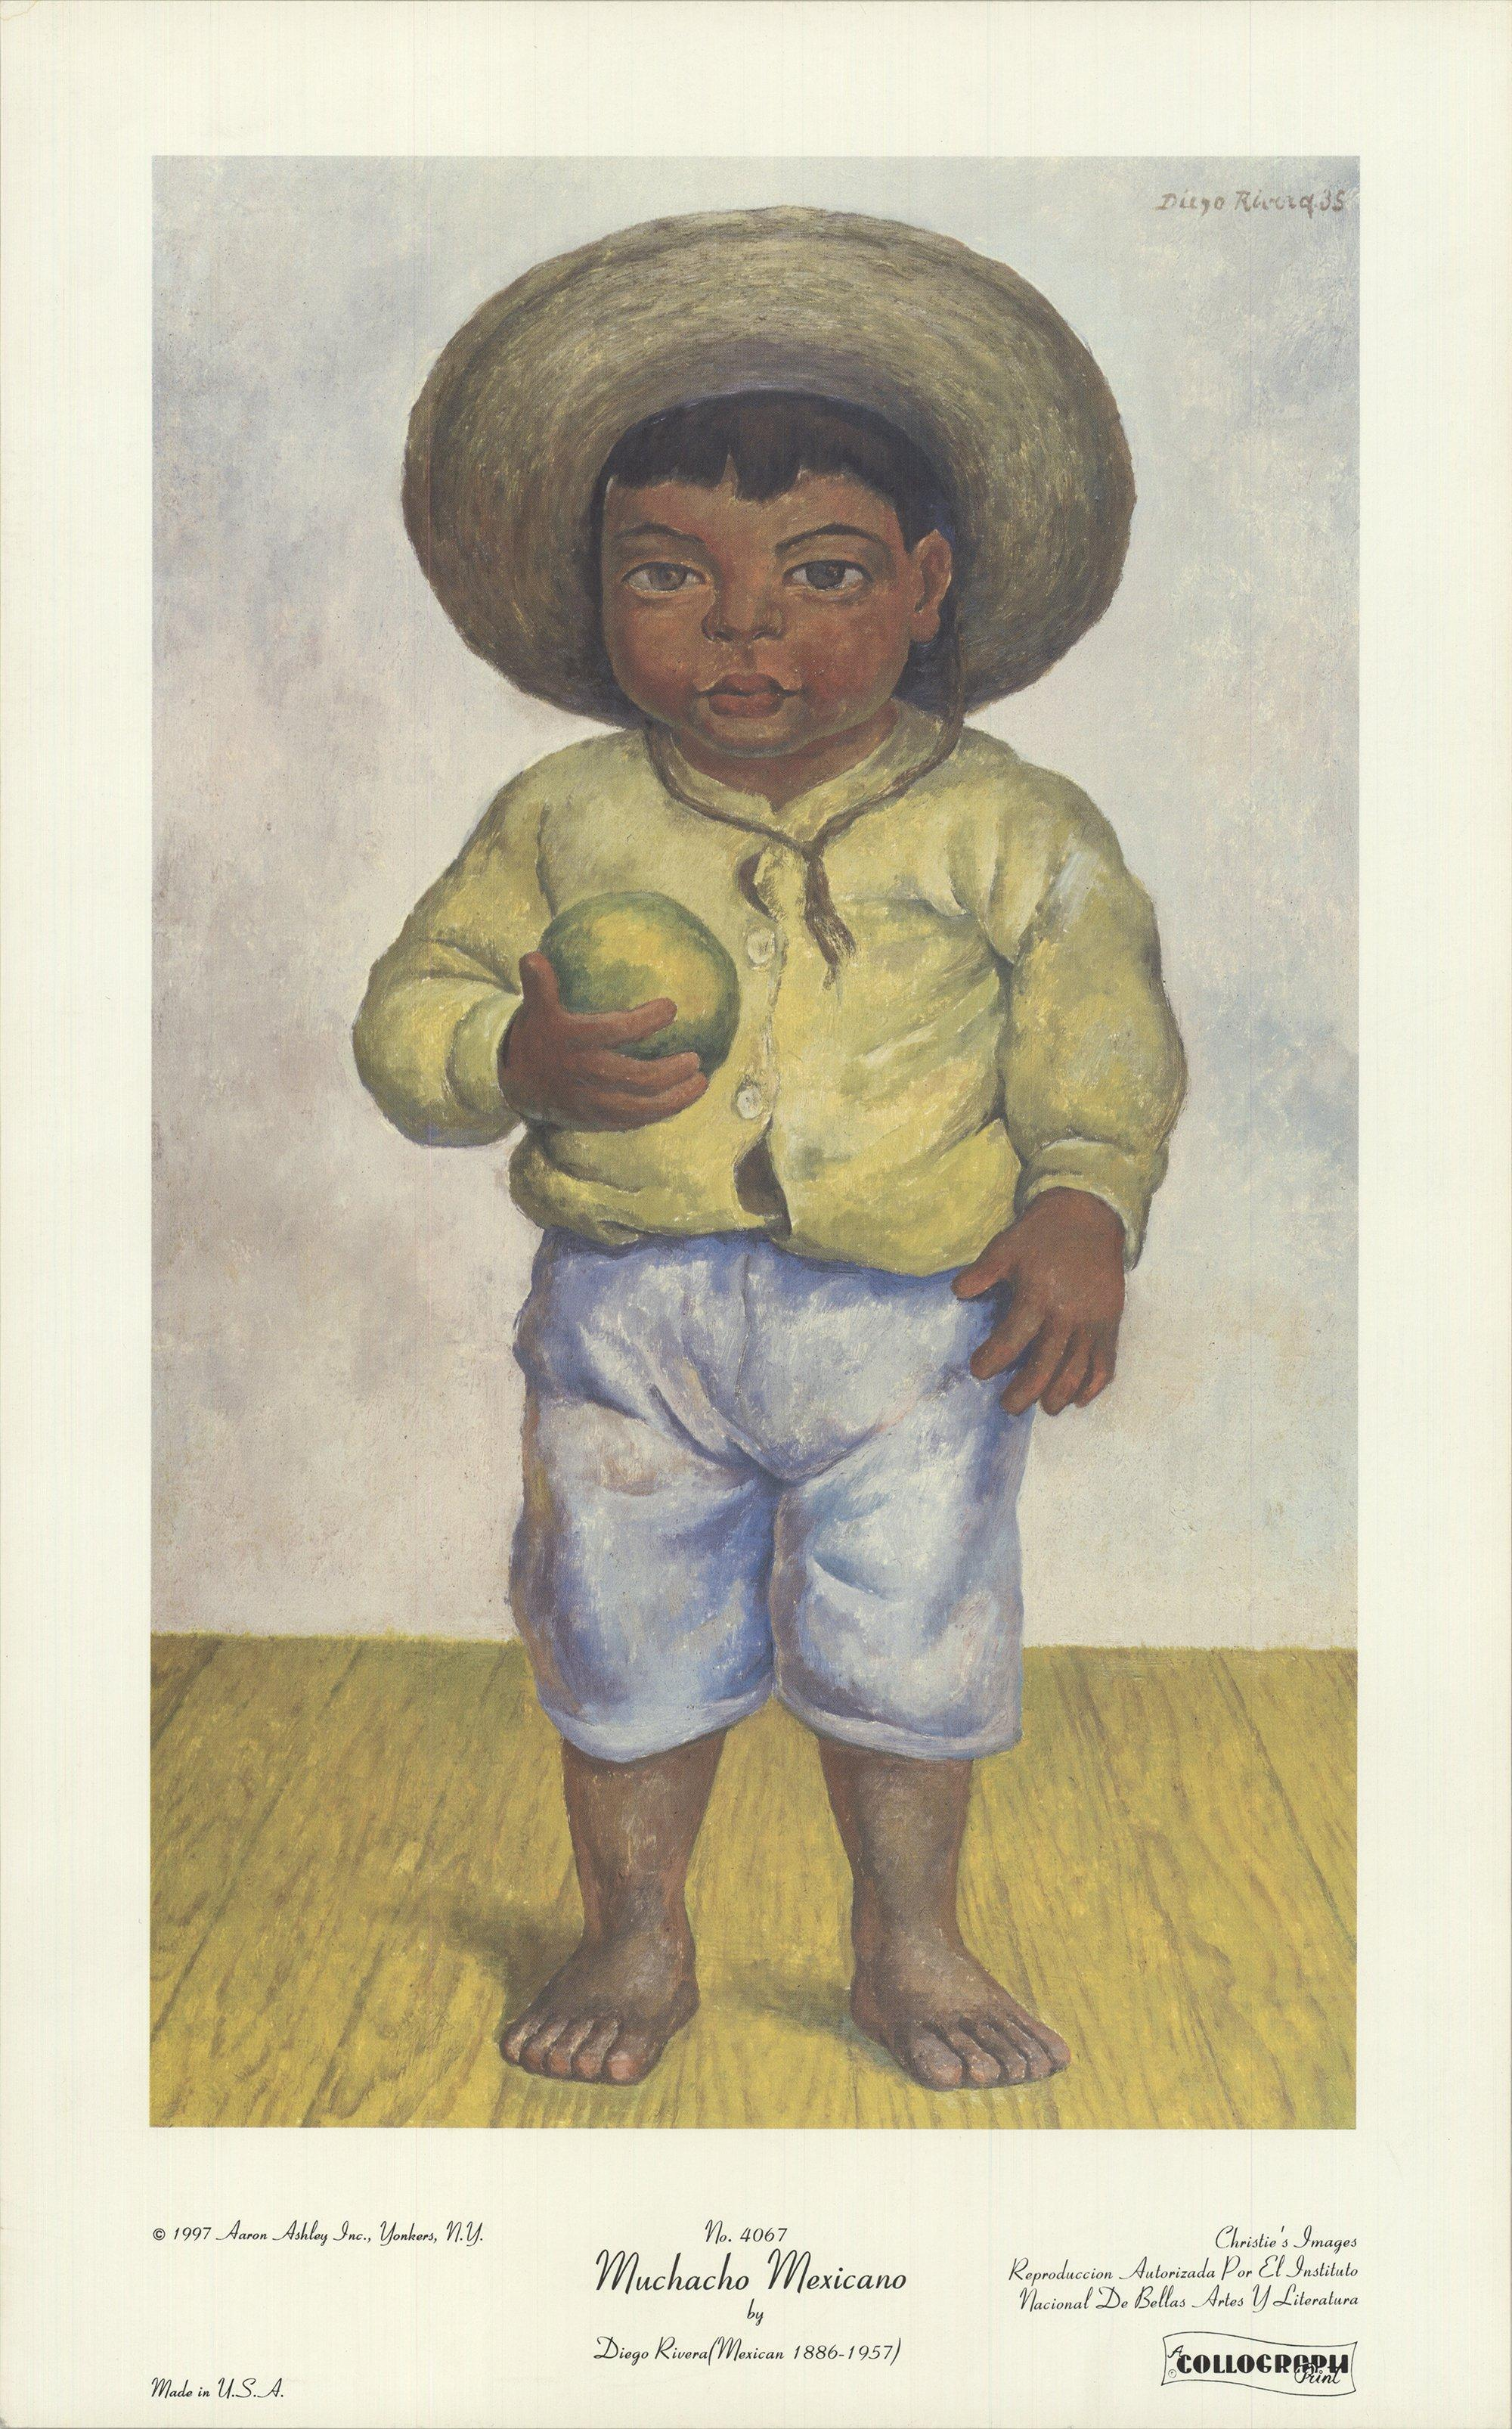 1997 After Diego Rivera 'Muchacho Mexicano' Modernism USA Offset Lithograph